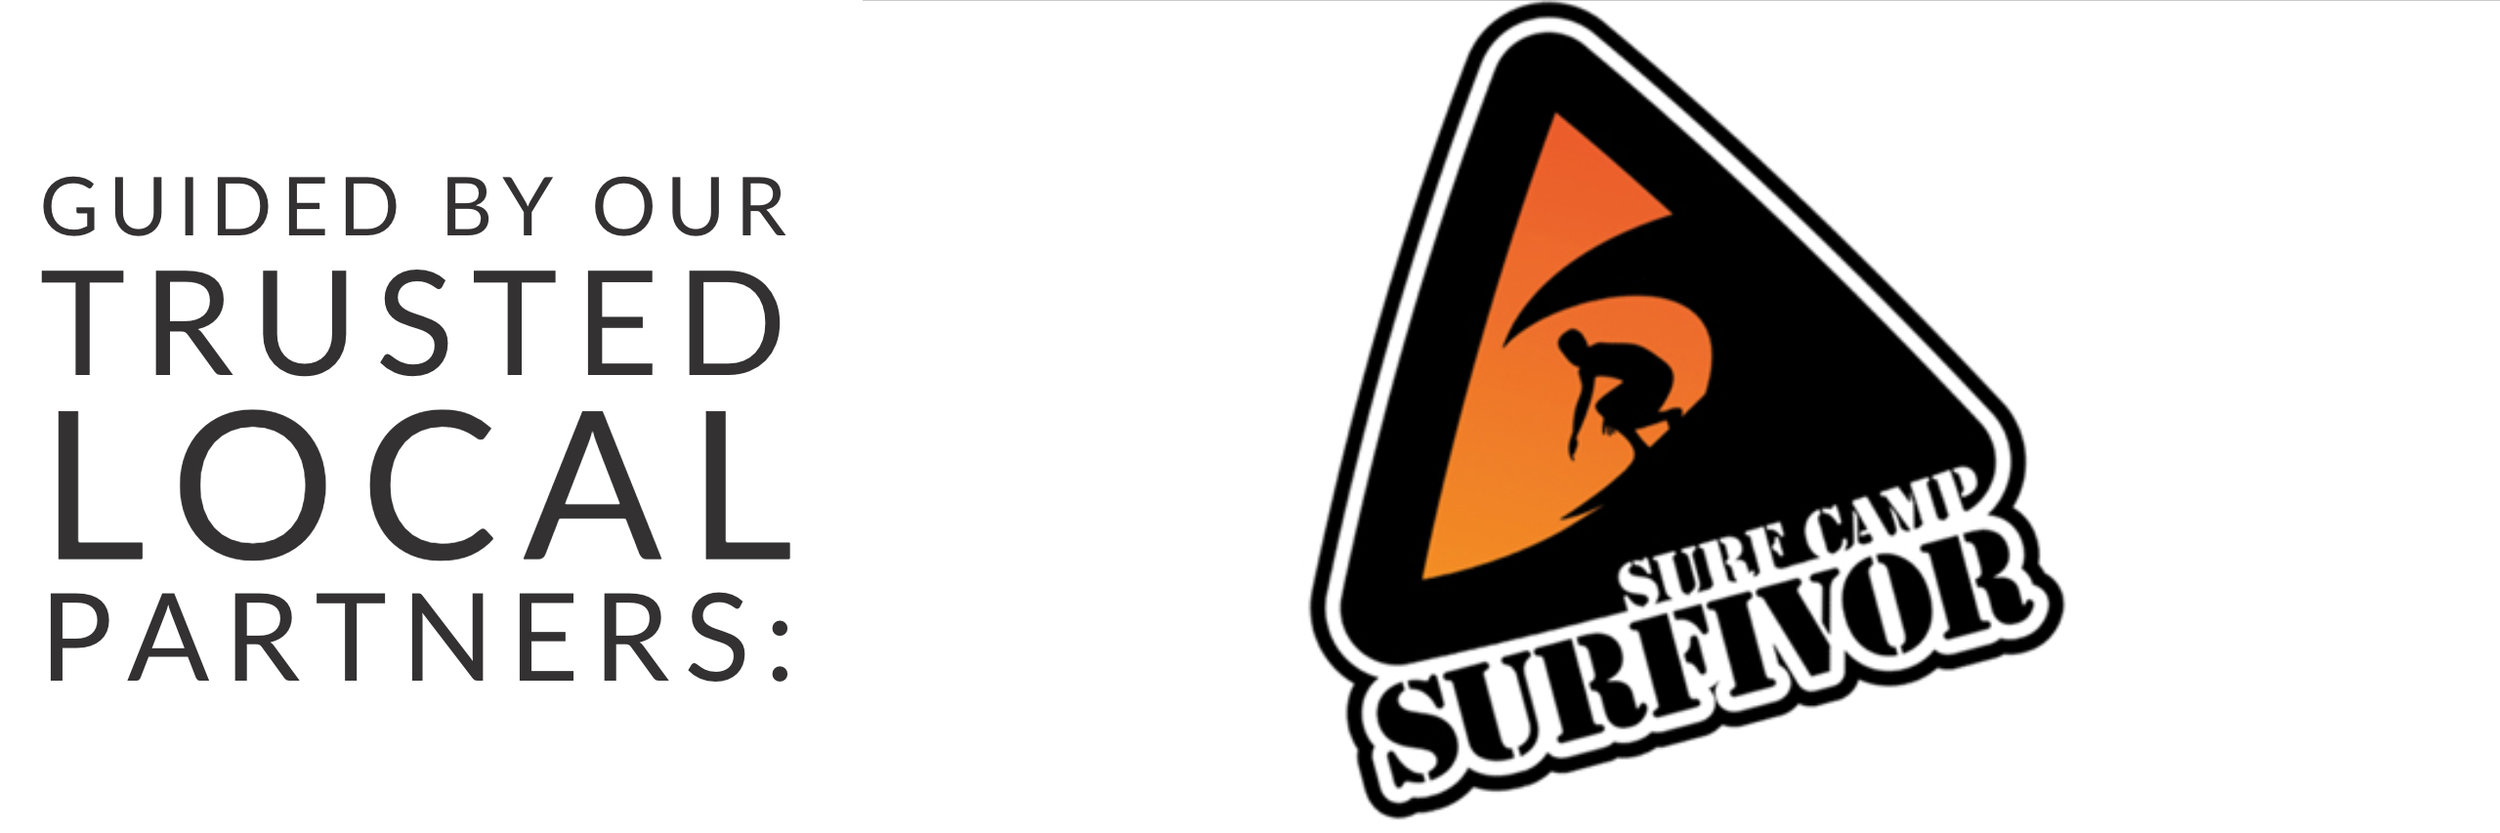 Guided by our trusted local partners: Surfivor Surf Camp